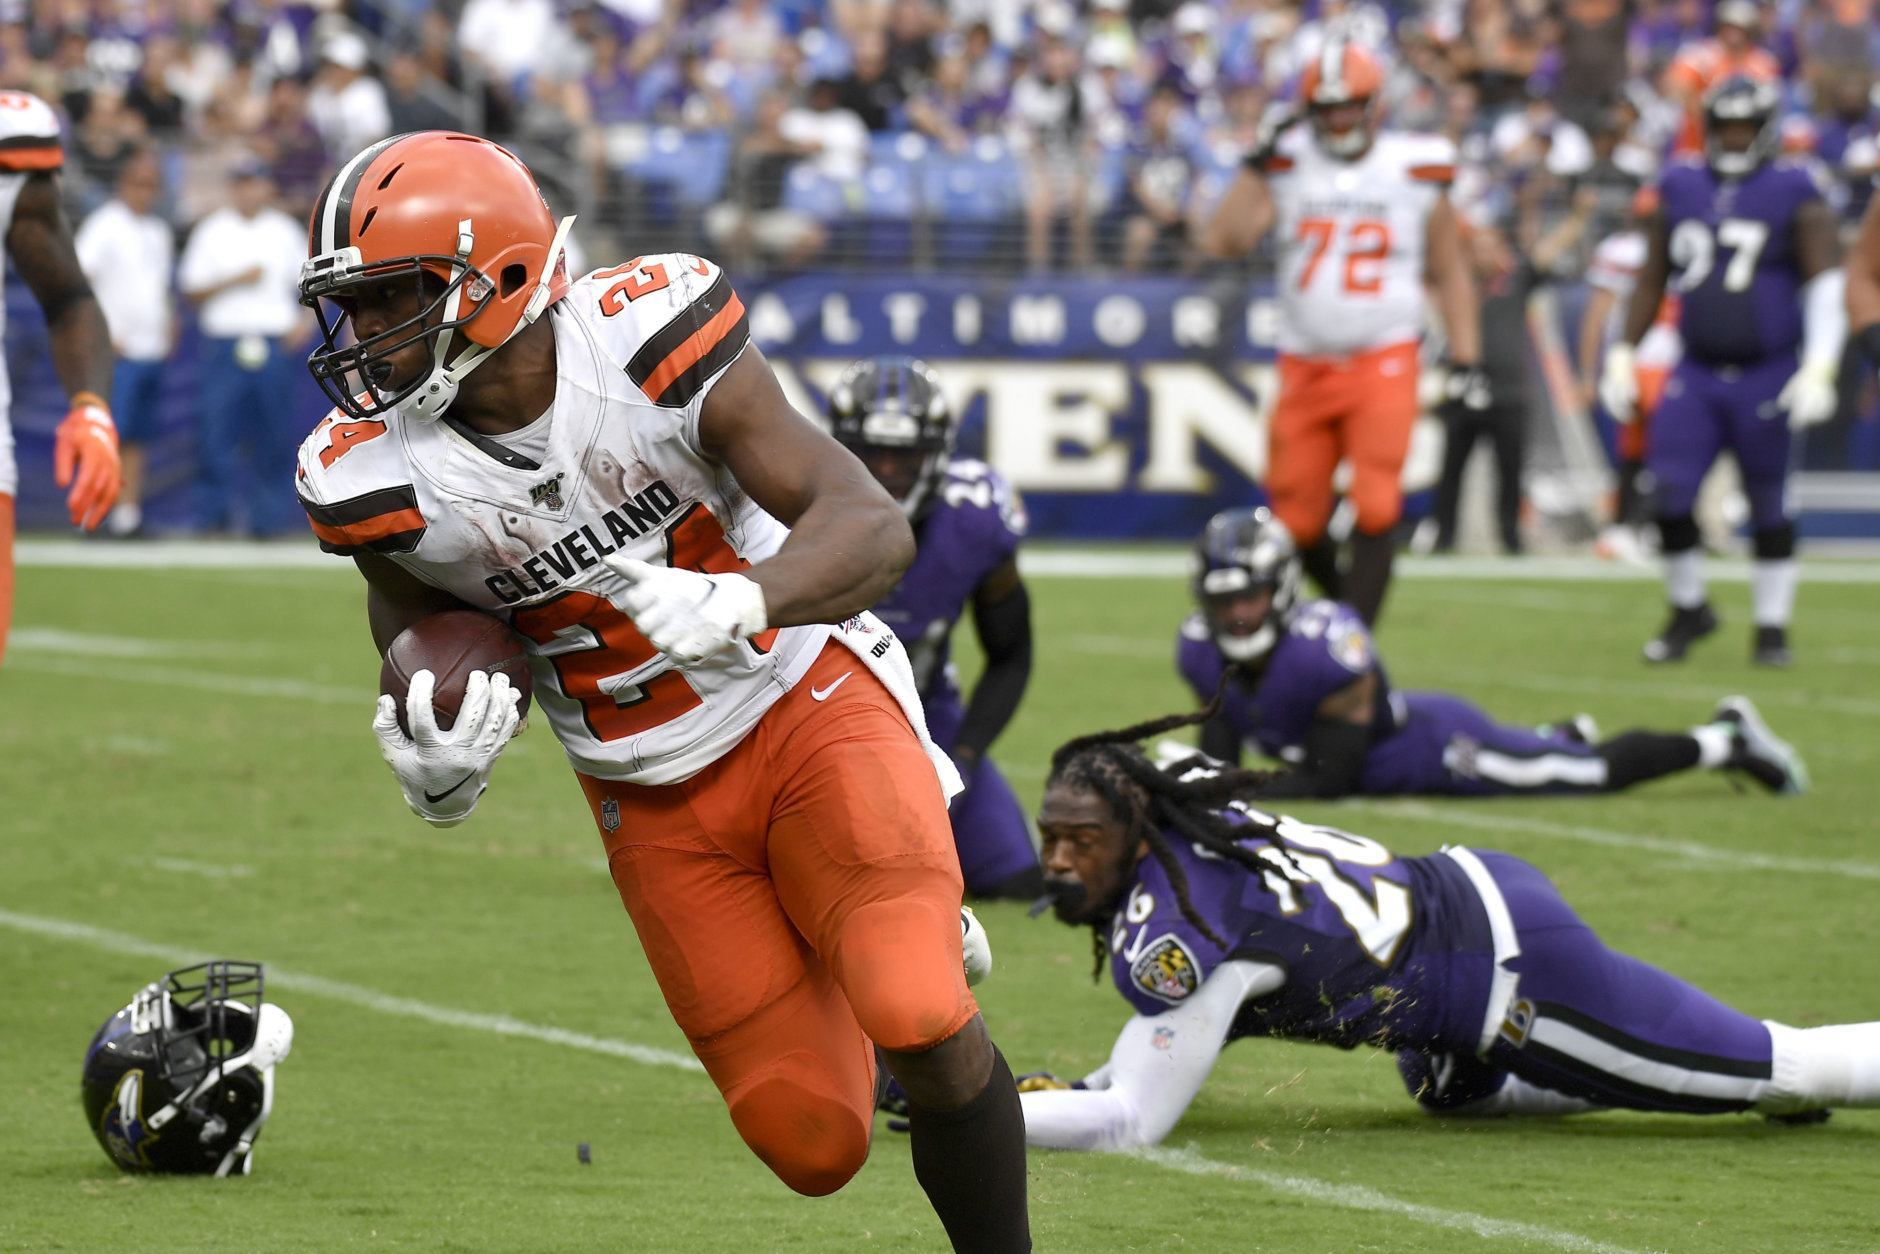 """<p><b><i>Browns 40</i></b><br /> <b><i>Ravens 25</i></b></p> <p>Lamar Jackson&#8217;s <a href=""""http://espn.com/blog/baltimore-ravens/post/_/id/50805/lamar-jackson-reaching-new-historic-heights-just-dont-bring-it-up"""">franchise-best pick-less streak</a> ended badly, but that may not even be Baltimore&#8217;s biggest concern: Cleveland ran it down the Ravens&#8217; throats <a href=""""https://deadspin.com/nick-chubb-pantsed-the-ravens-defense-and-shoved-them-i-1838601002?utm_source=deadspin_facebook&amp;utm_campaign=socialflow_deadspin_facebook&amp;utm_medium=socialflow"""">in historic fashion</a>, which had <a href=""""http://www.nfl.com/news/story/0ap3000001060585/article/earl-thomas-brandon-williams-have-heated-talk-after-loss"""">the Ravens D quarreling among themselves</a> after the game. If the Browns provided the blueprint for exposing Baltimore&#8217;s defense, it might be their division to win after all.</p>"""